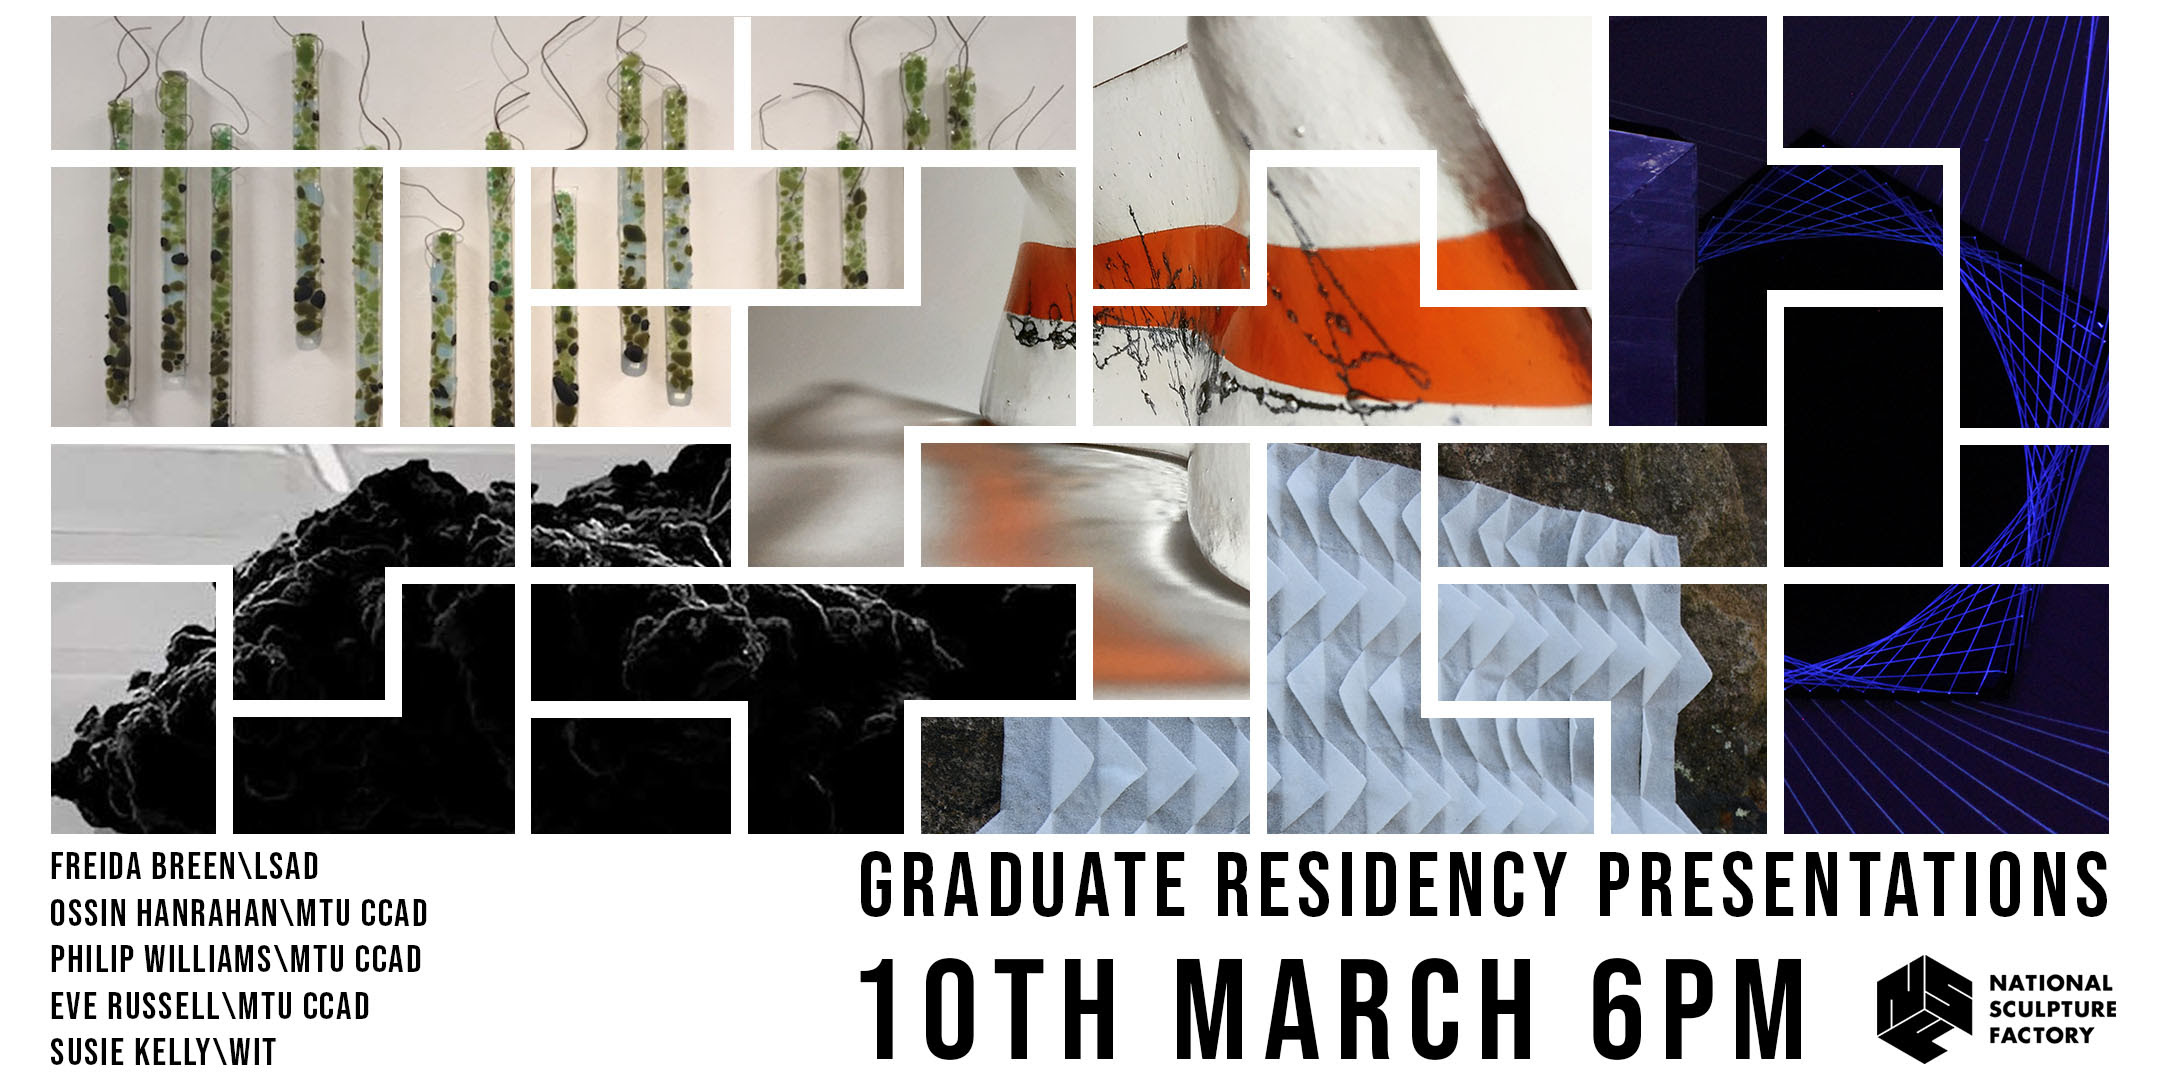 Graduate Residency Presentations 2021 - A collage of multiple artworks including colourful abstract glass objects, triangular white folded paper pattern, a dark storm cloud and dark blue geometric laser pattern National Sculpture Factory Graduate Residency Presentations 10th March 6PM